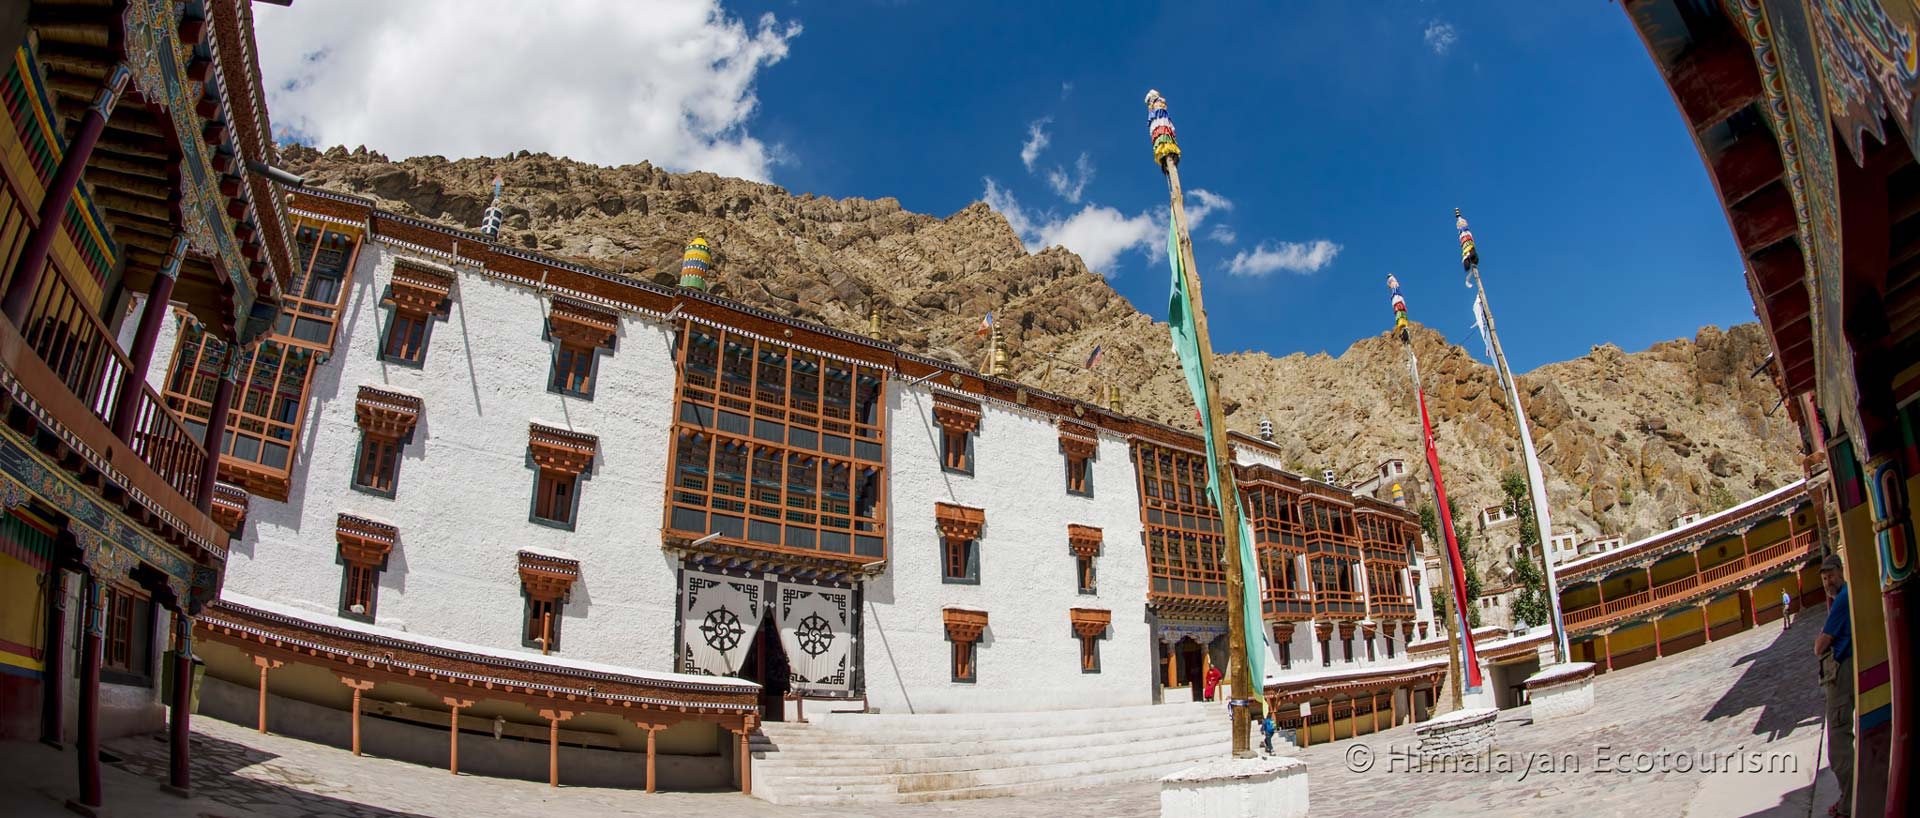 The Hemis monastery on day 7